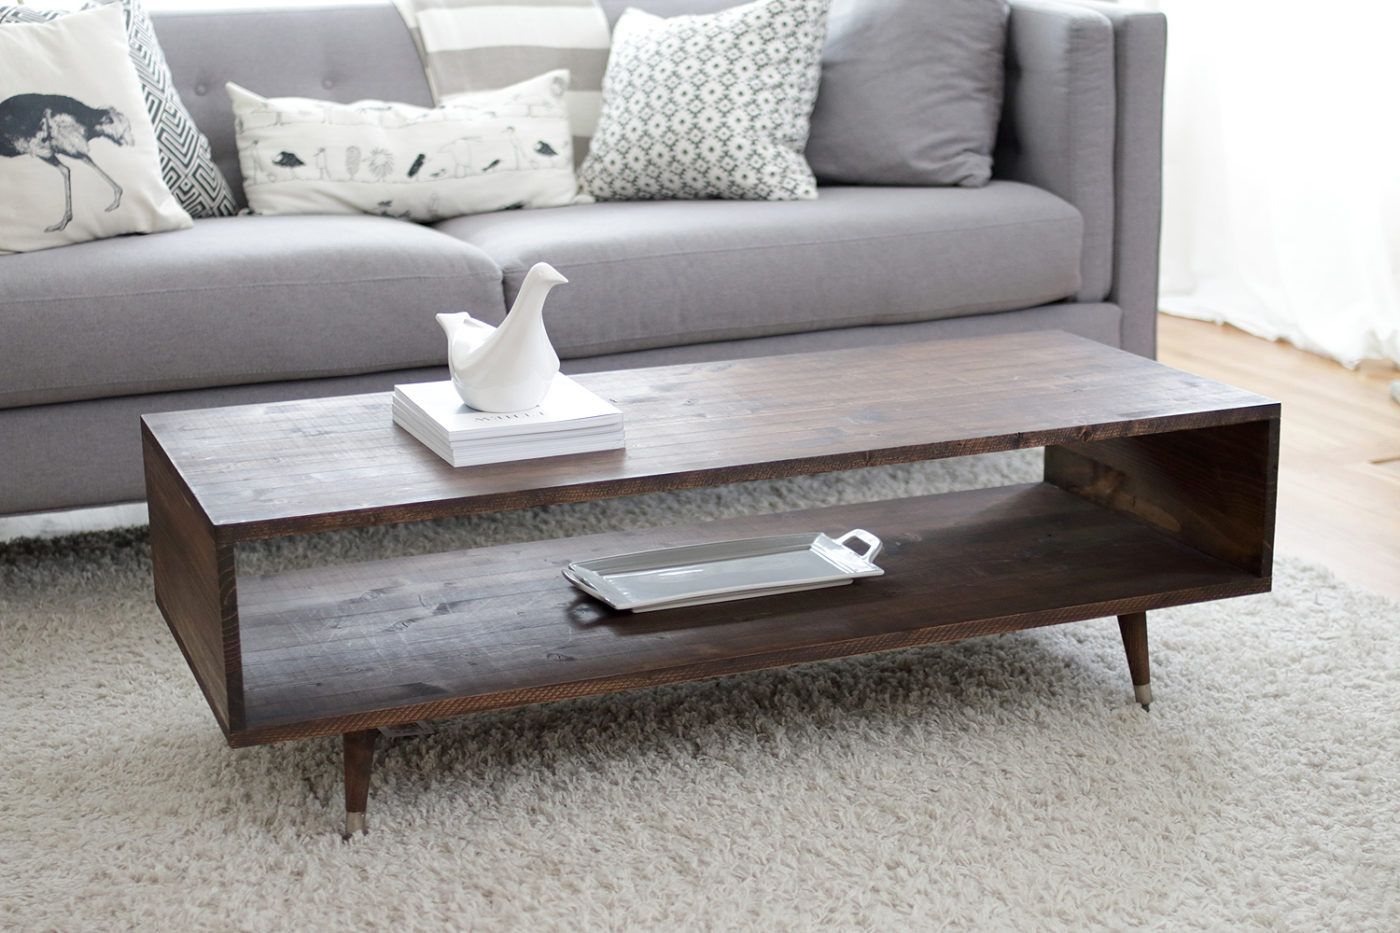 60 DIY Coffee Table Plans and Ideas with Form and Function | Couchtisch modern, Couchtisch holz, Wohnzimmertisch